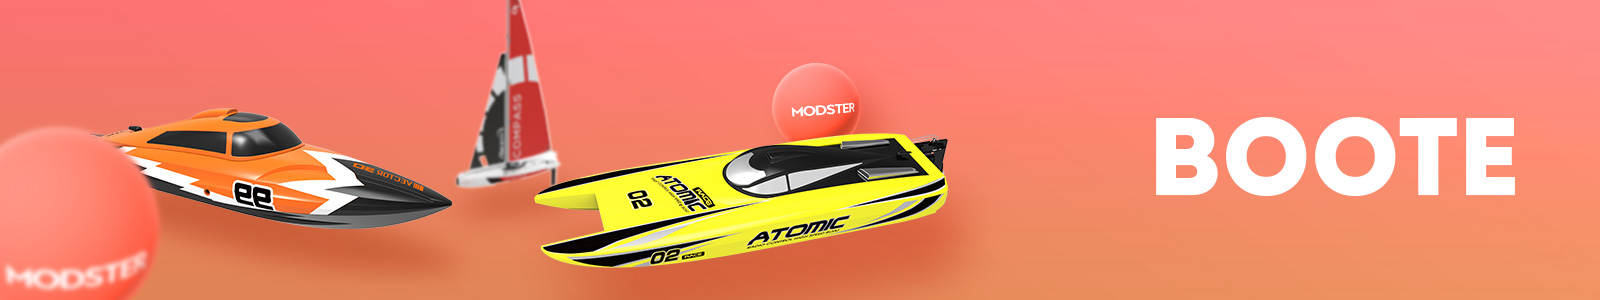 Modster-RC-Boote-Boats-Ships-Ferngesteuert